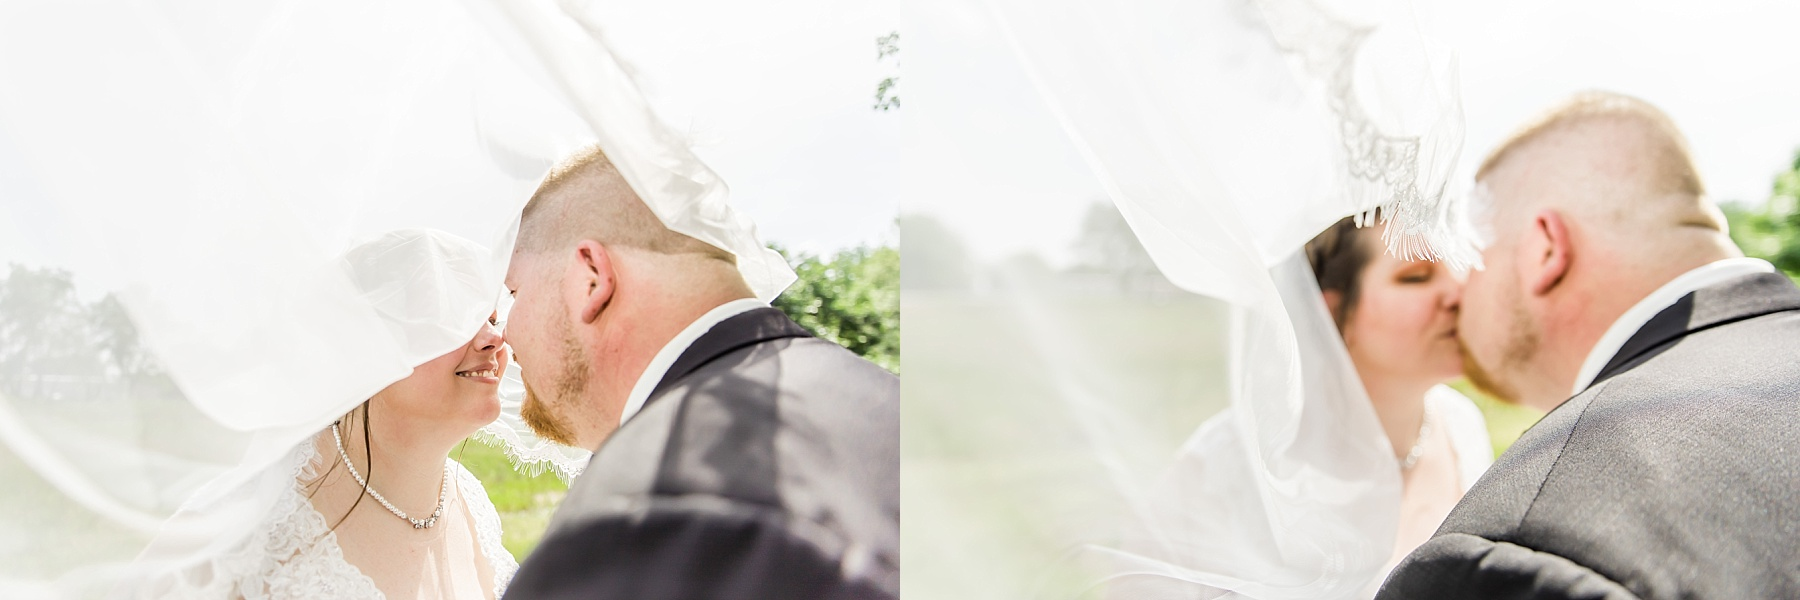 lafayette indiana wedding photographer photography thomas duncan hall_0157.jpg